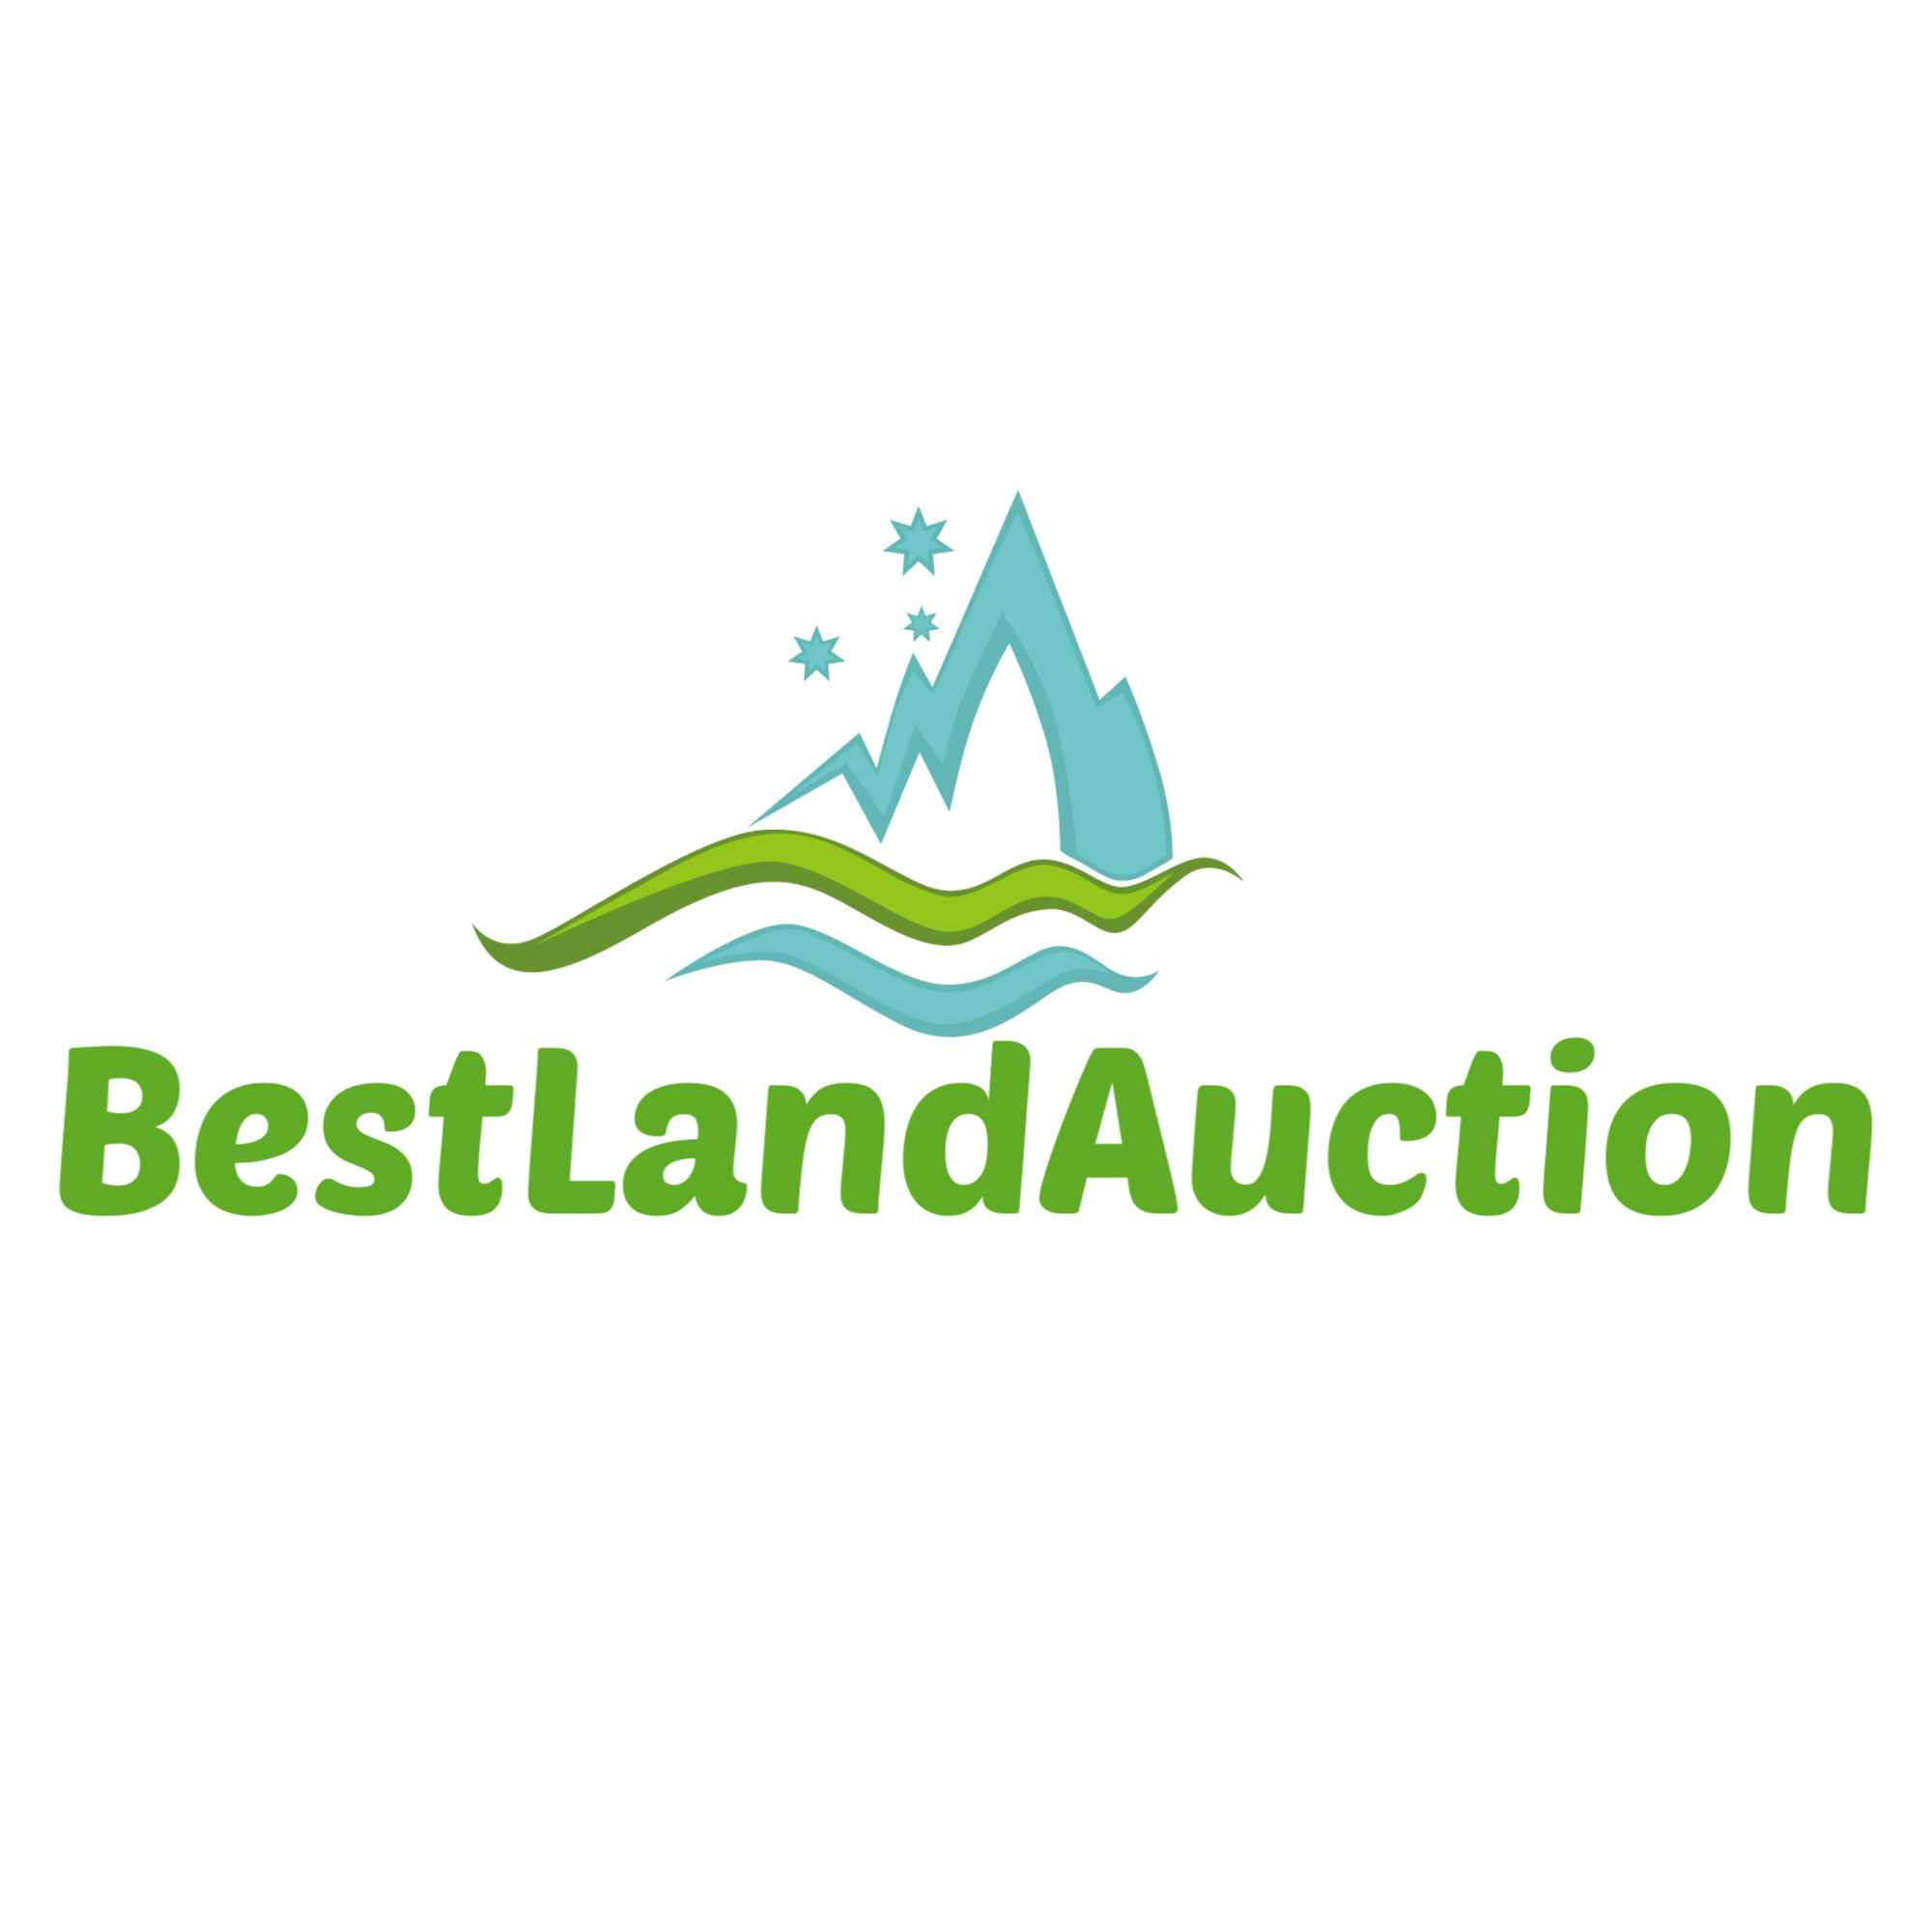 Best Land Auction